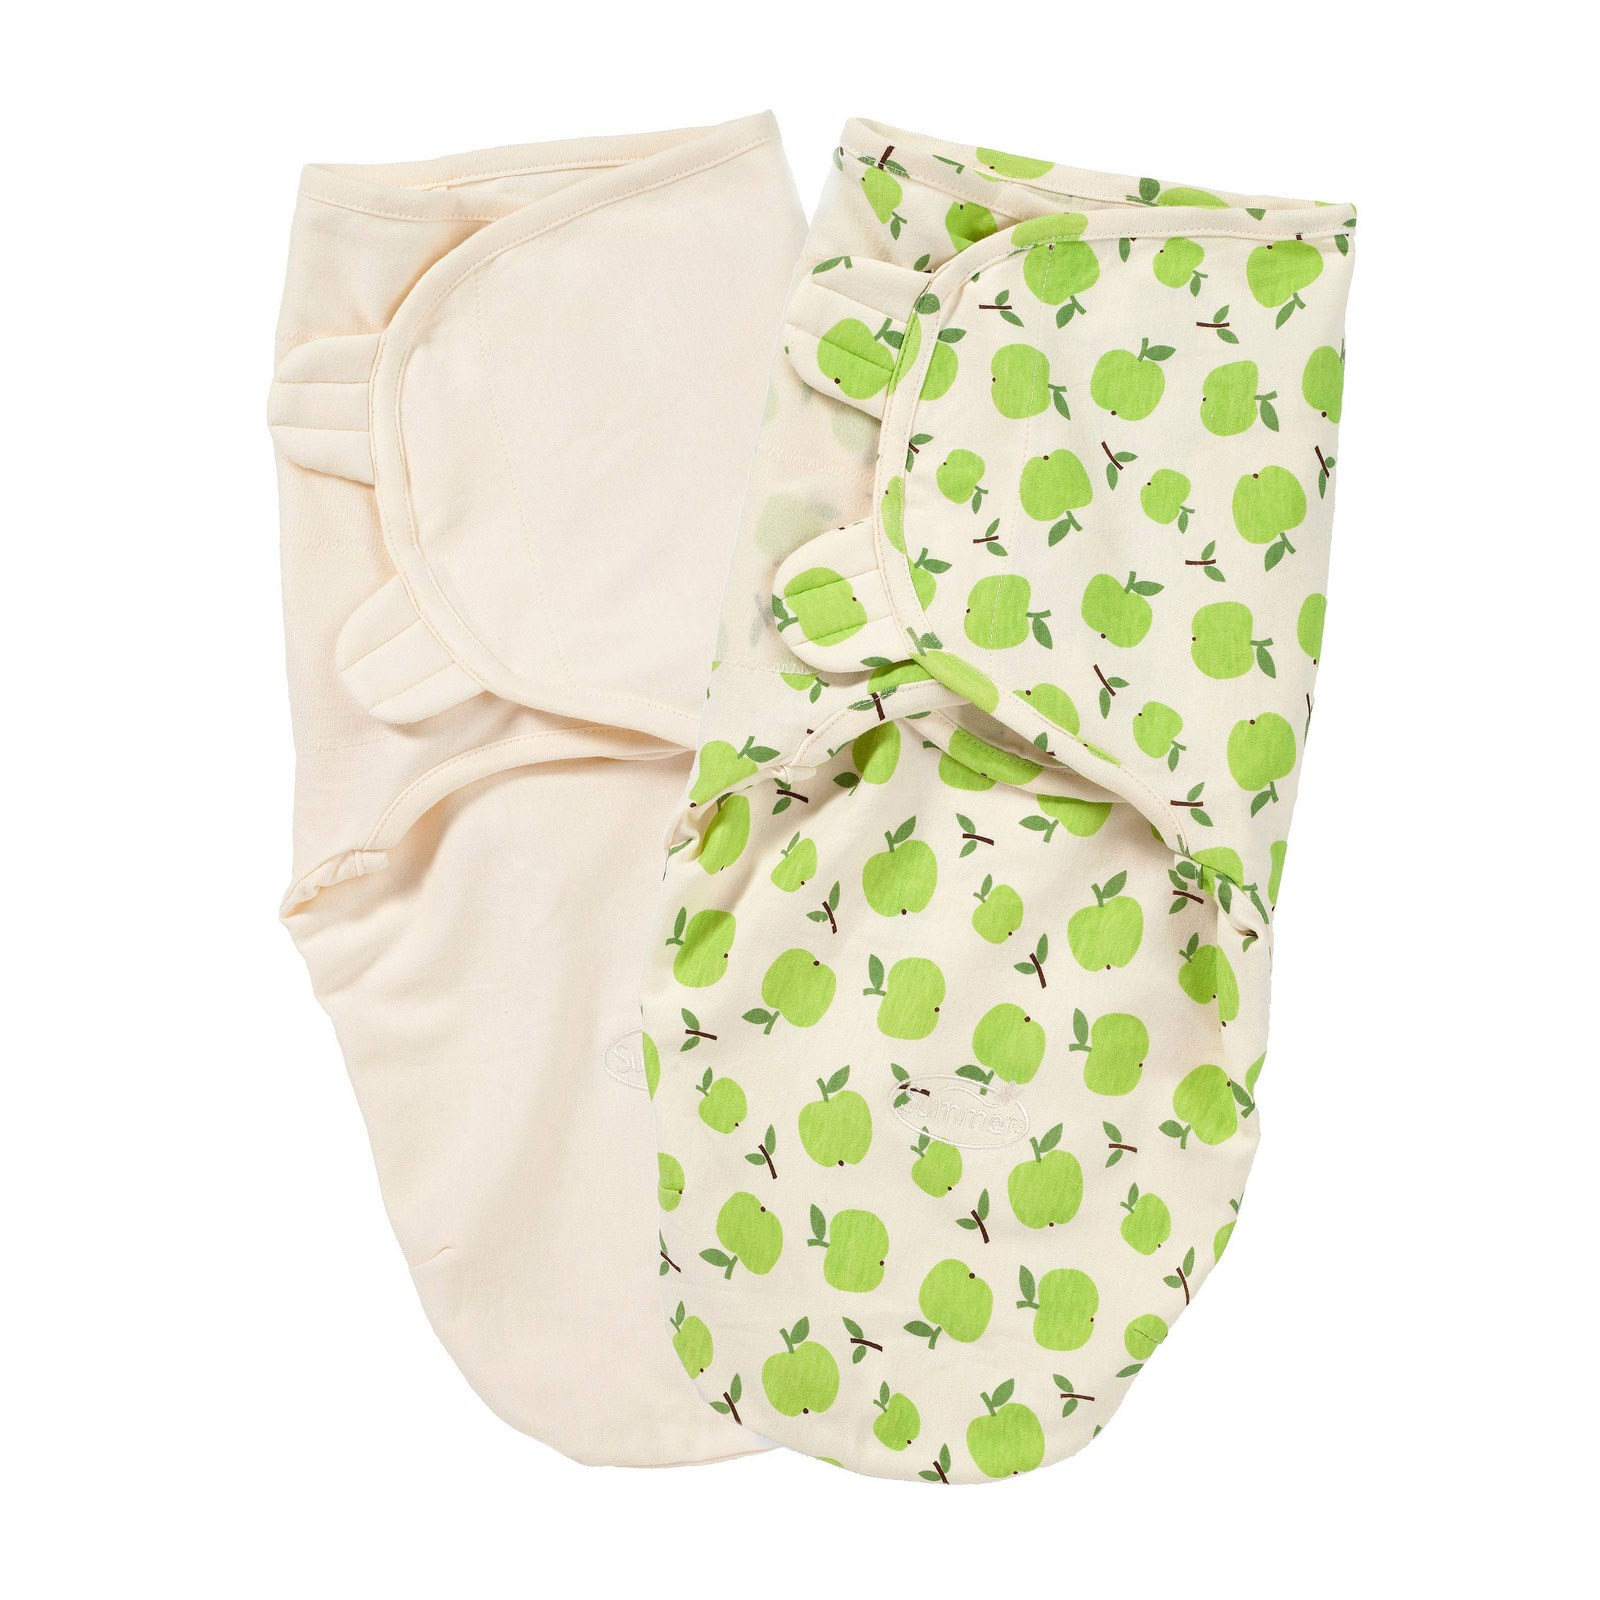 3 Pack 7-14lbs Swaddleme Baby Swaddle Swaddling Blankets 3 Designs